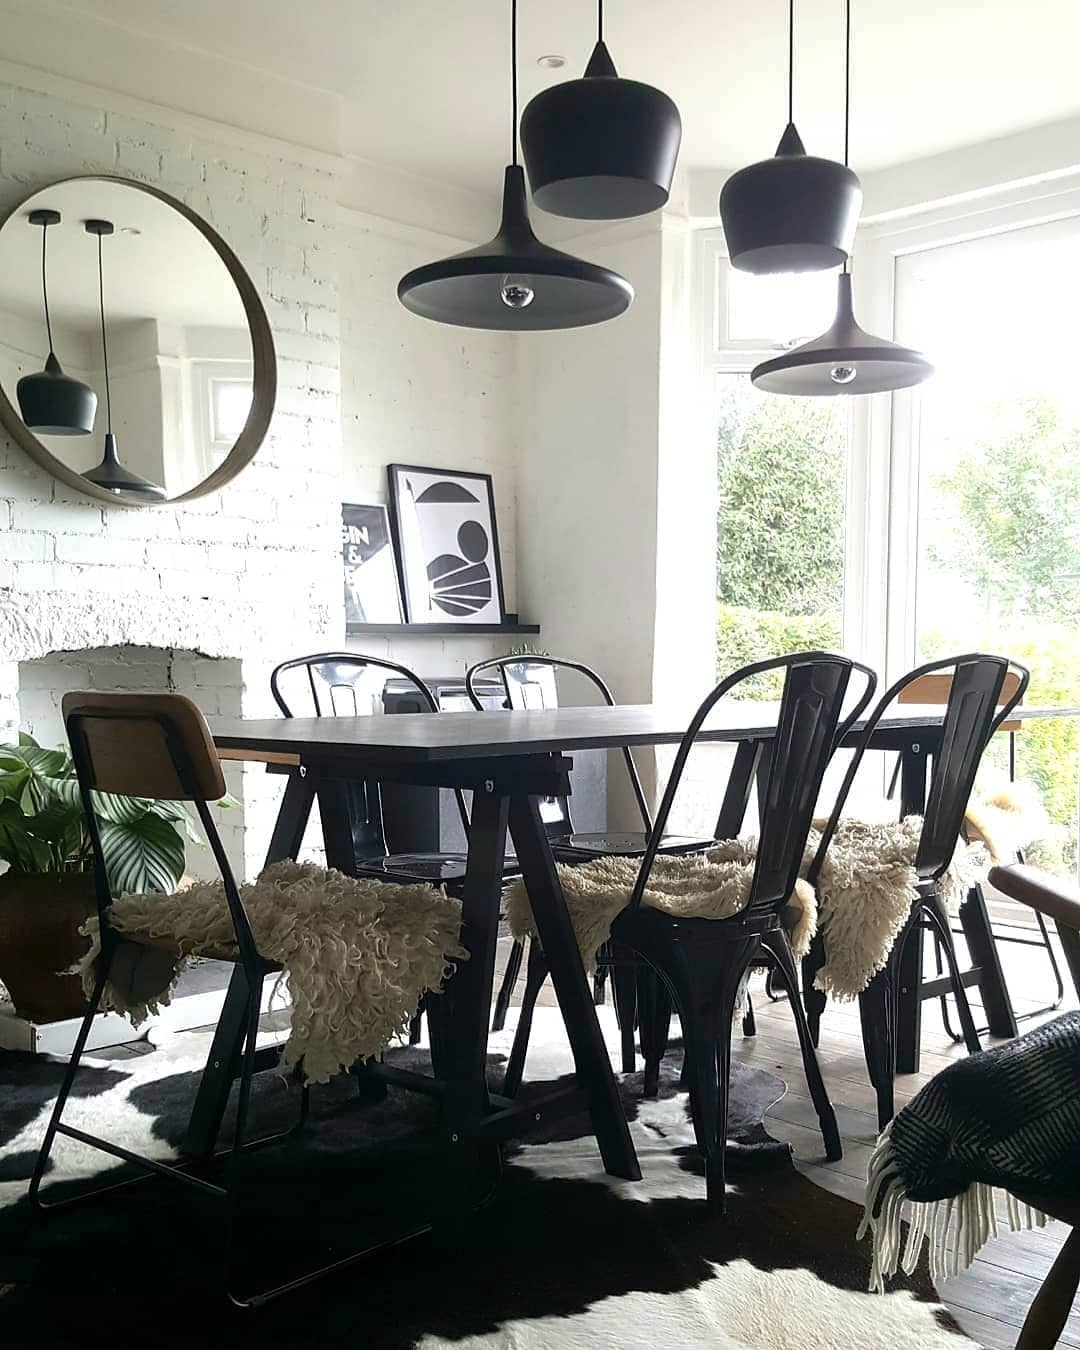 Industrial dining chairs with black pendant lights via @e.t.shown_home